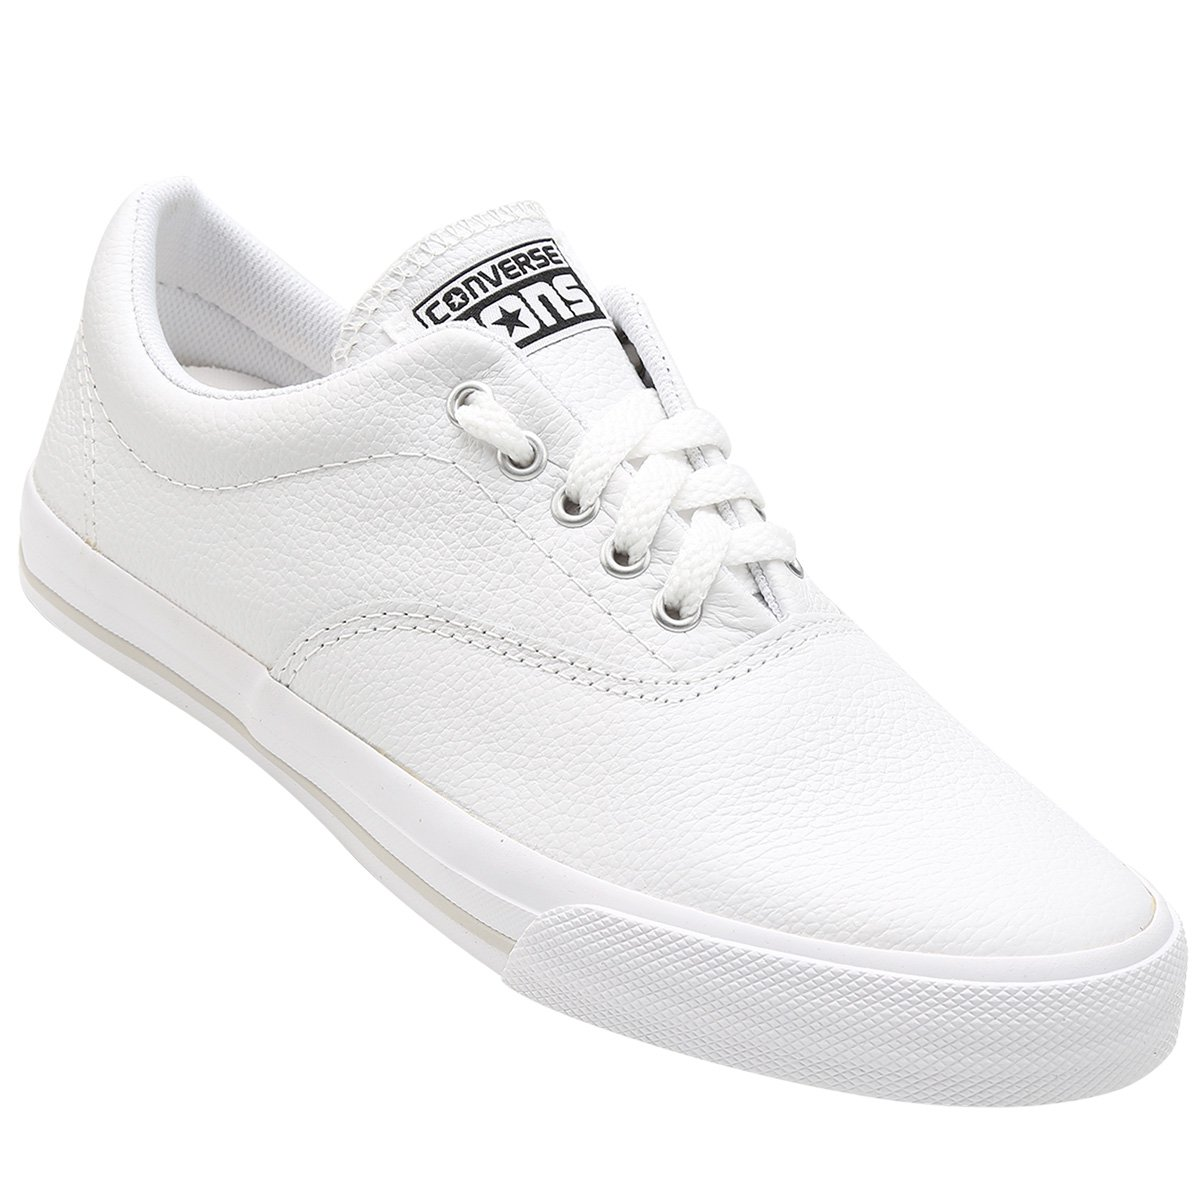 af81226c0aa ... buy tênis converse all star skidgrip cvo leather ox compre agora  netshoes 91fe9 cb84e ...